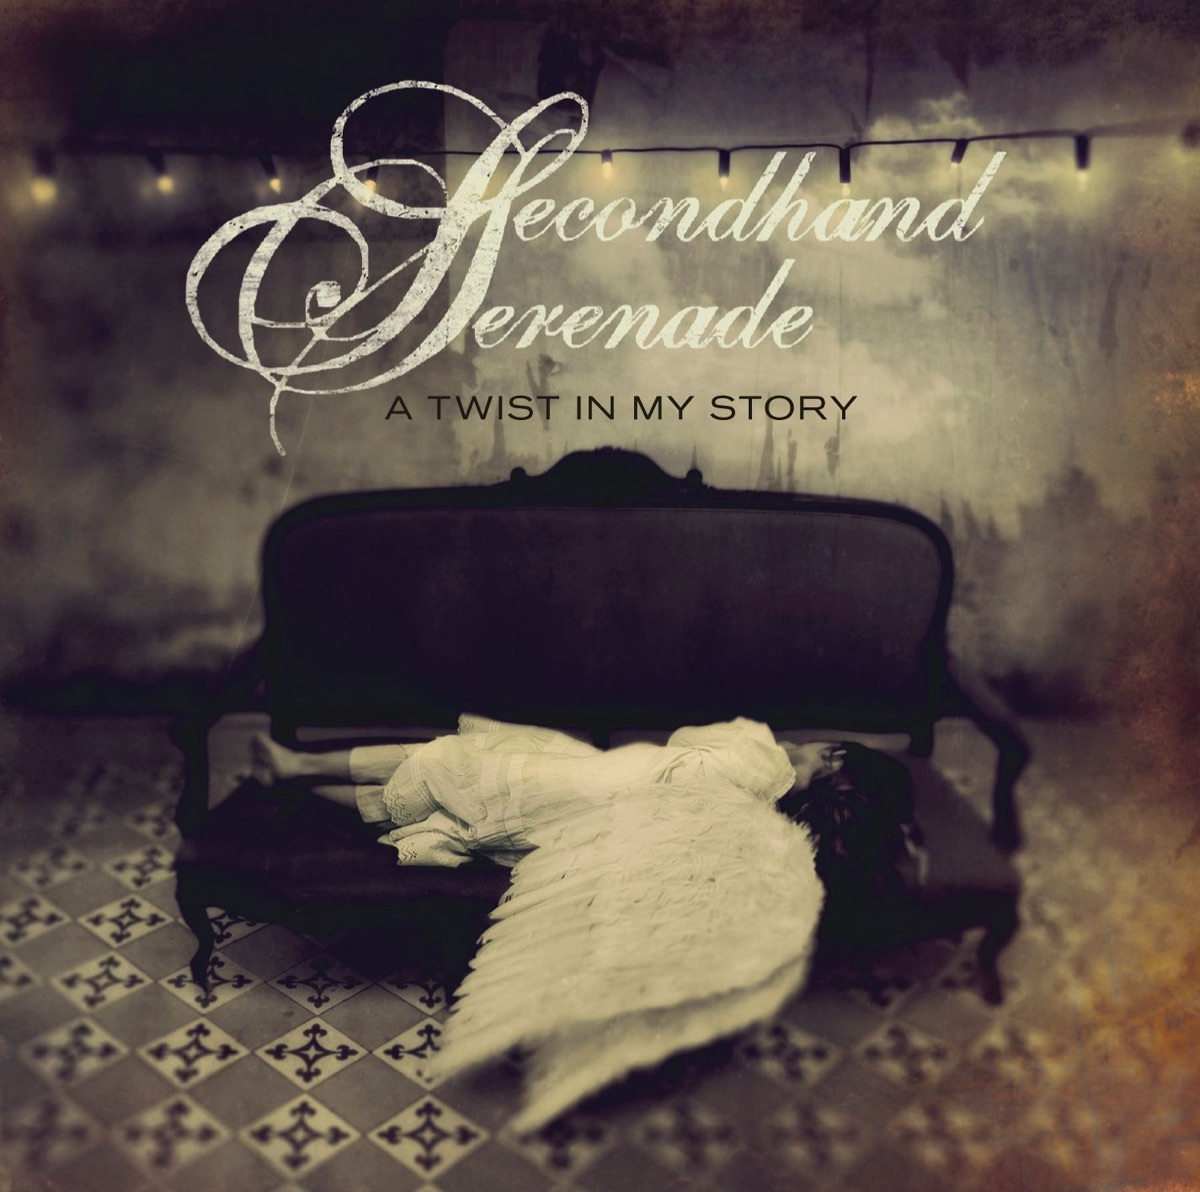 A Twist In My Story Album Cover by Secondhand Serenade